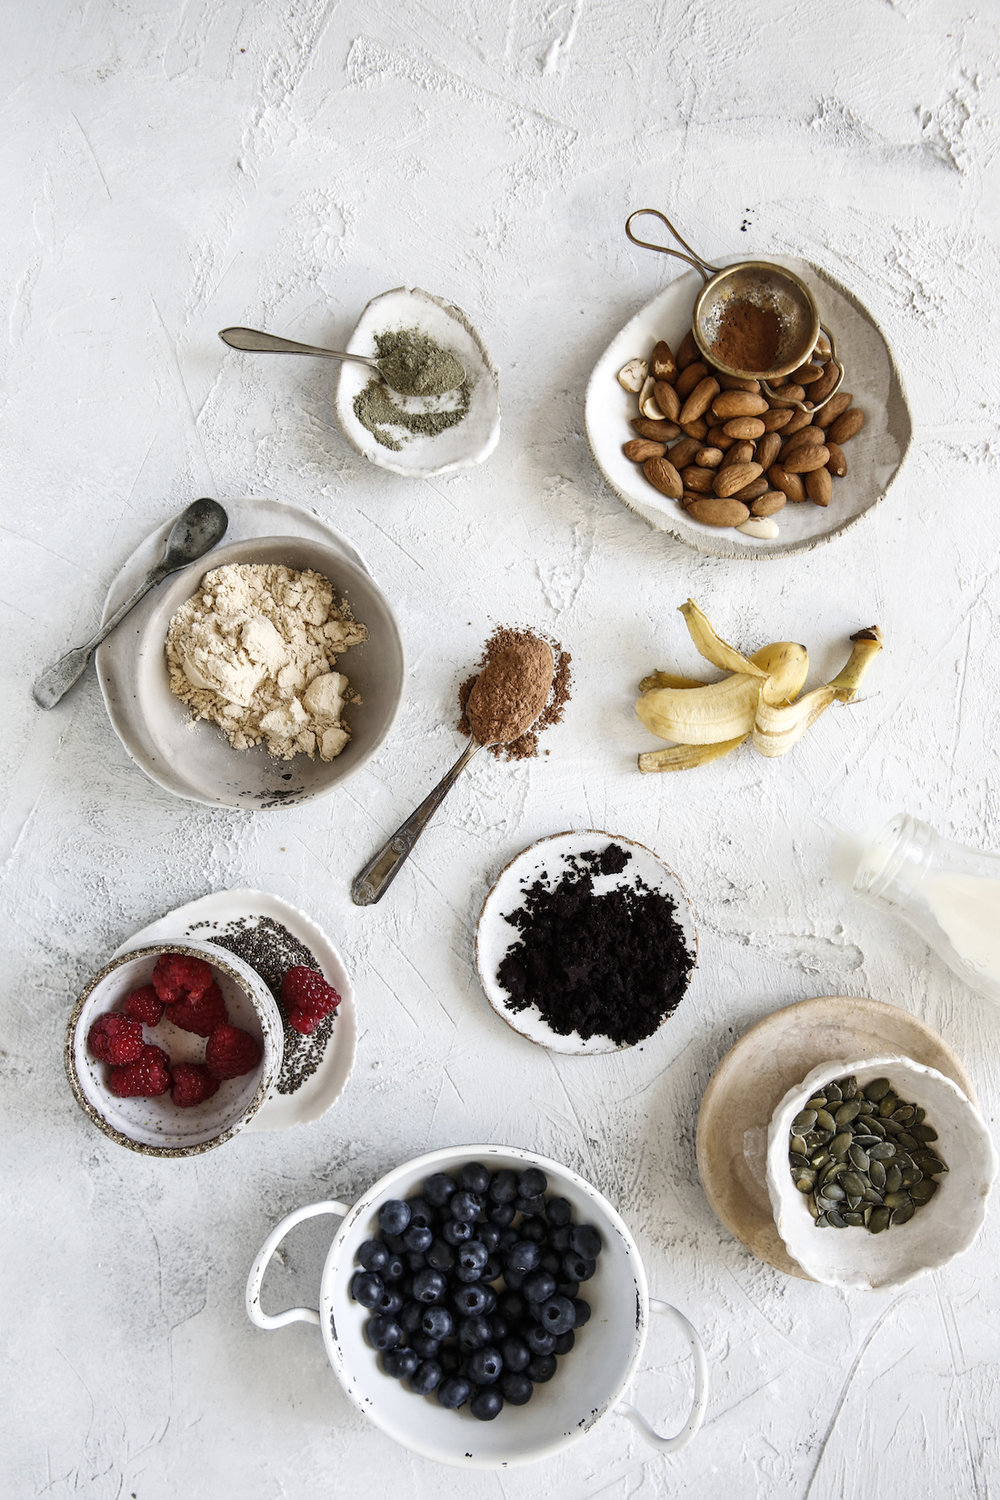 Berries, chia, nuts, Vital greens, protein powder, bananas, cacao & seeds. All amazing things to keep in the pantry for smoothies, breakfast bowls & snacks during the day.